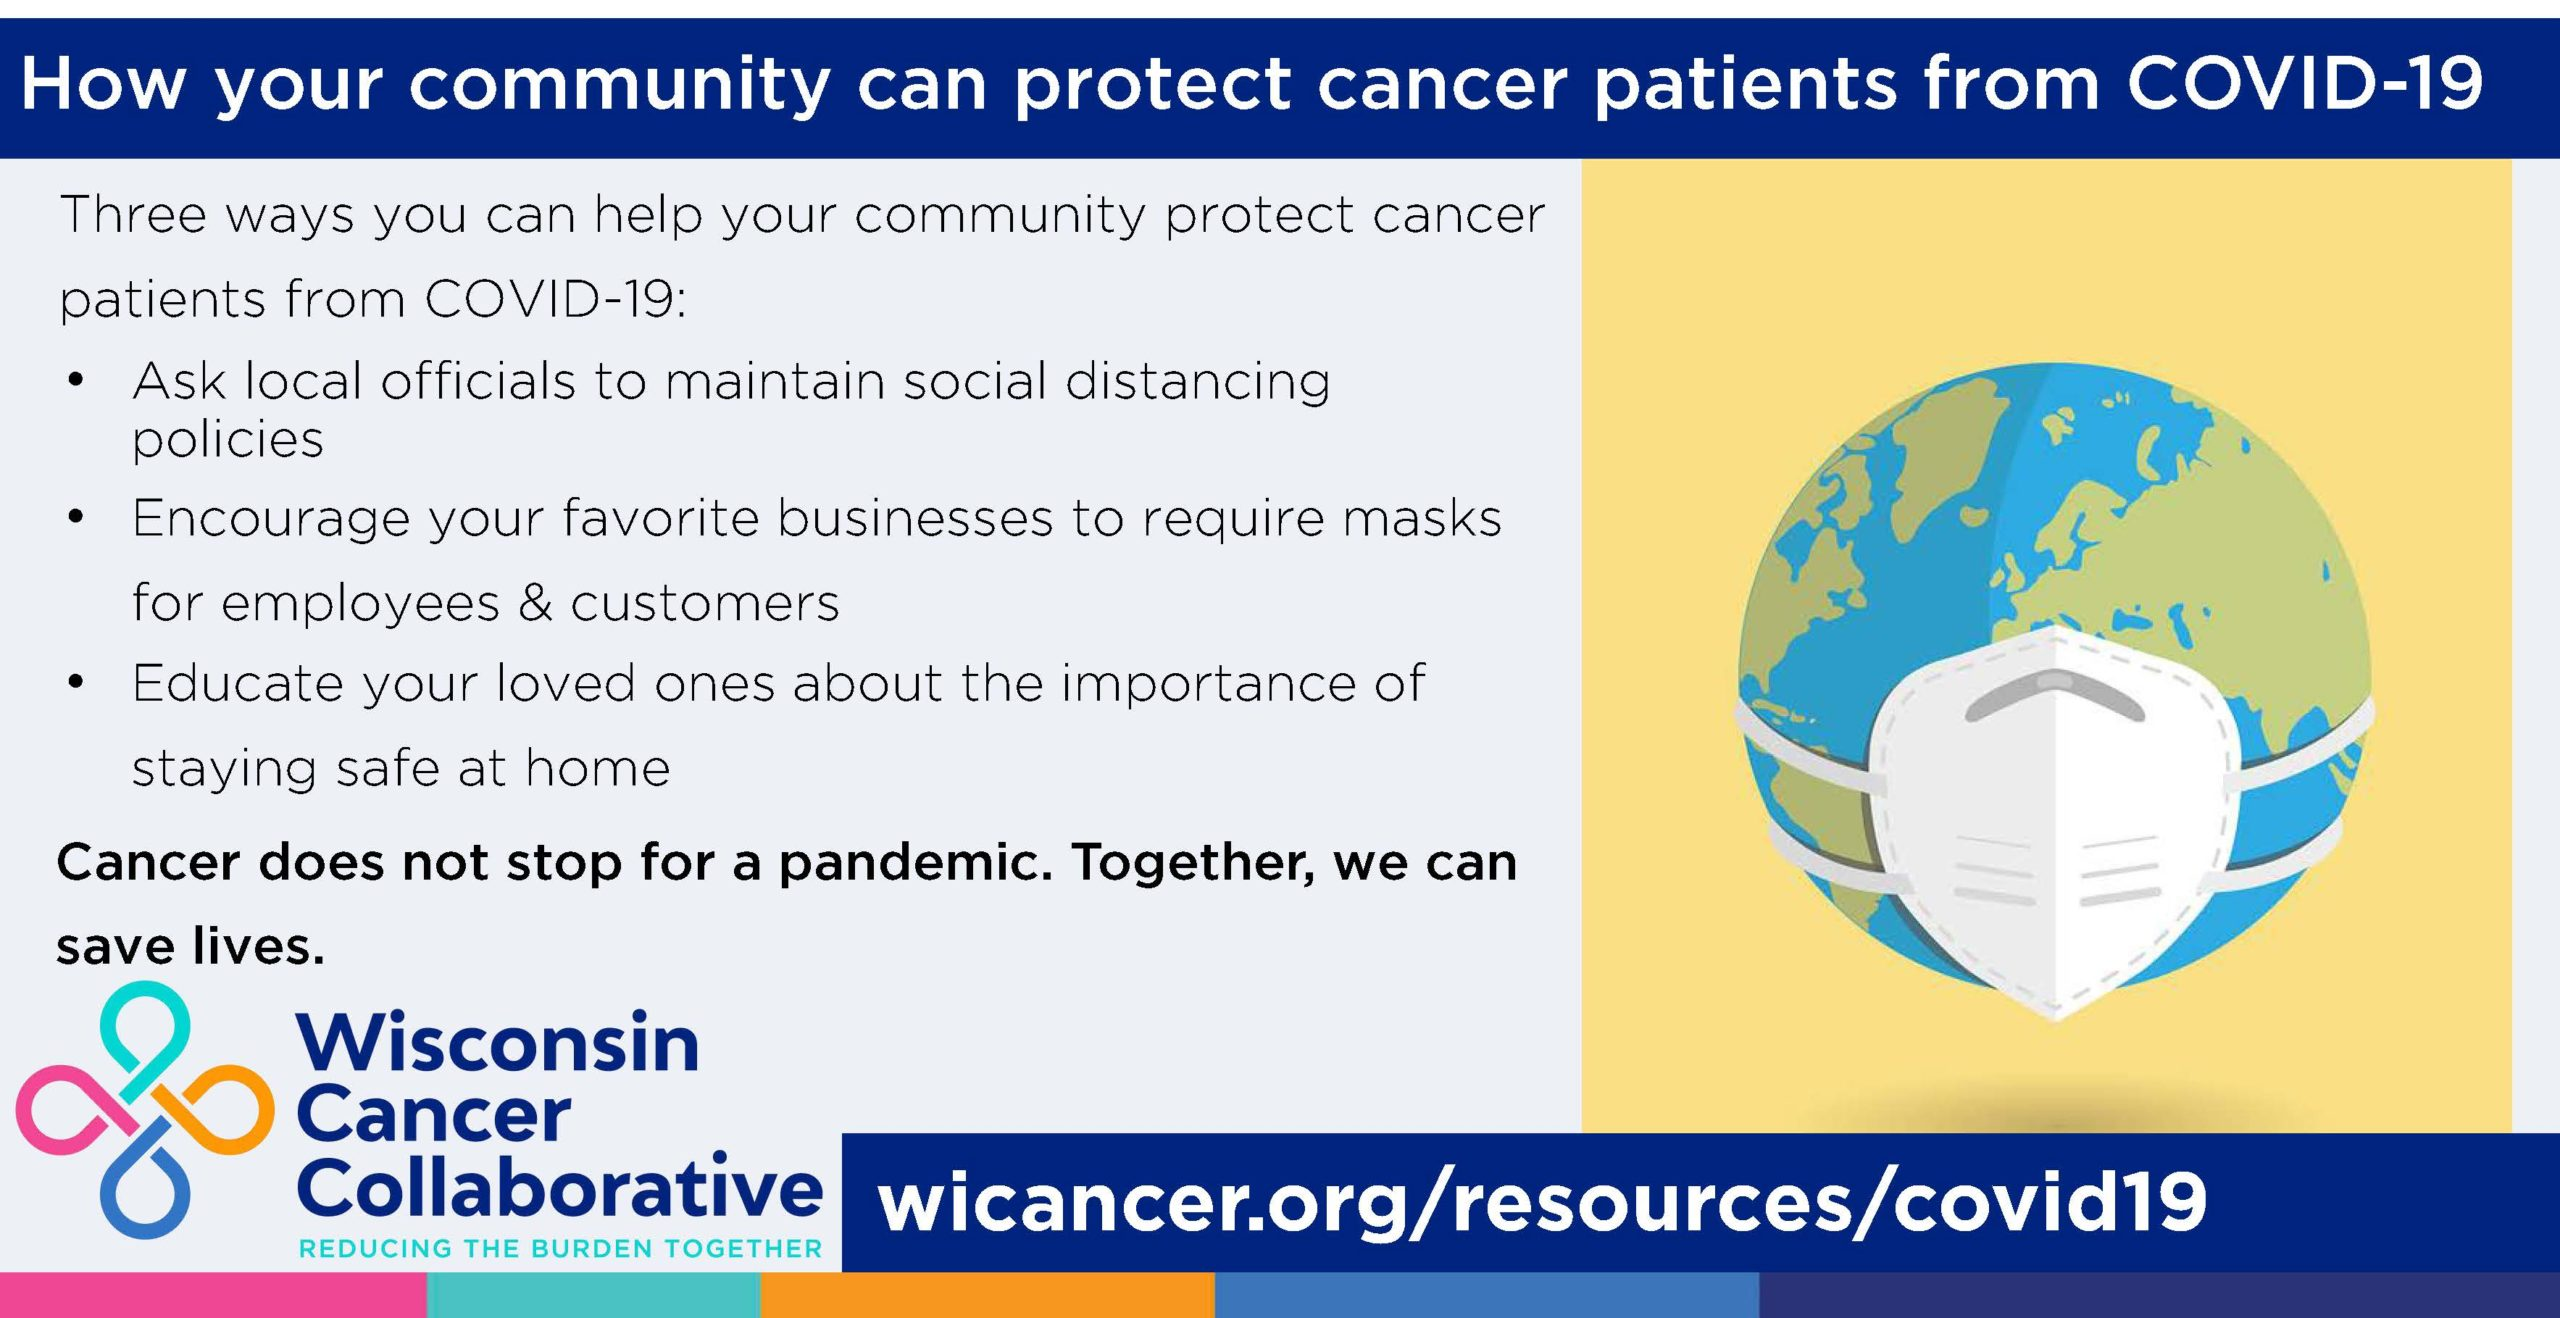 How your community can protect cancer patients from COVID-19